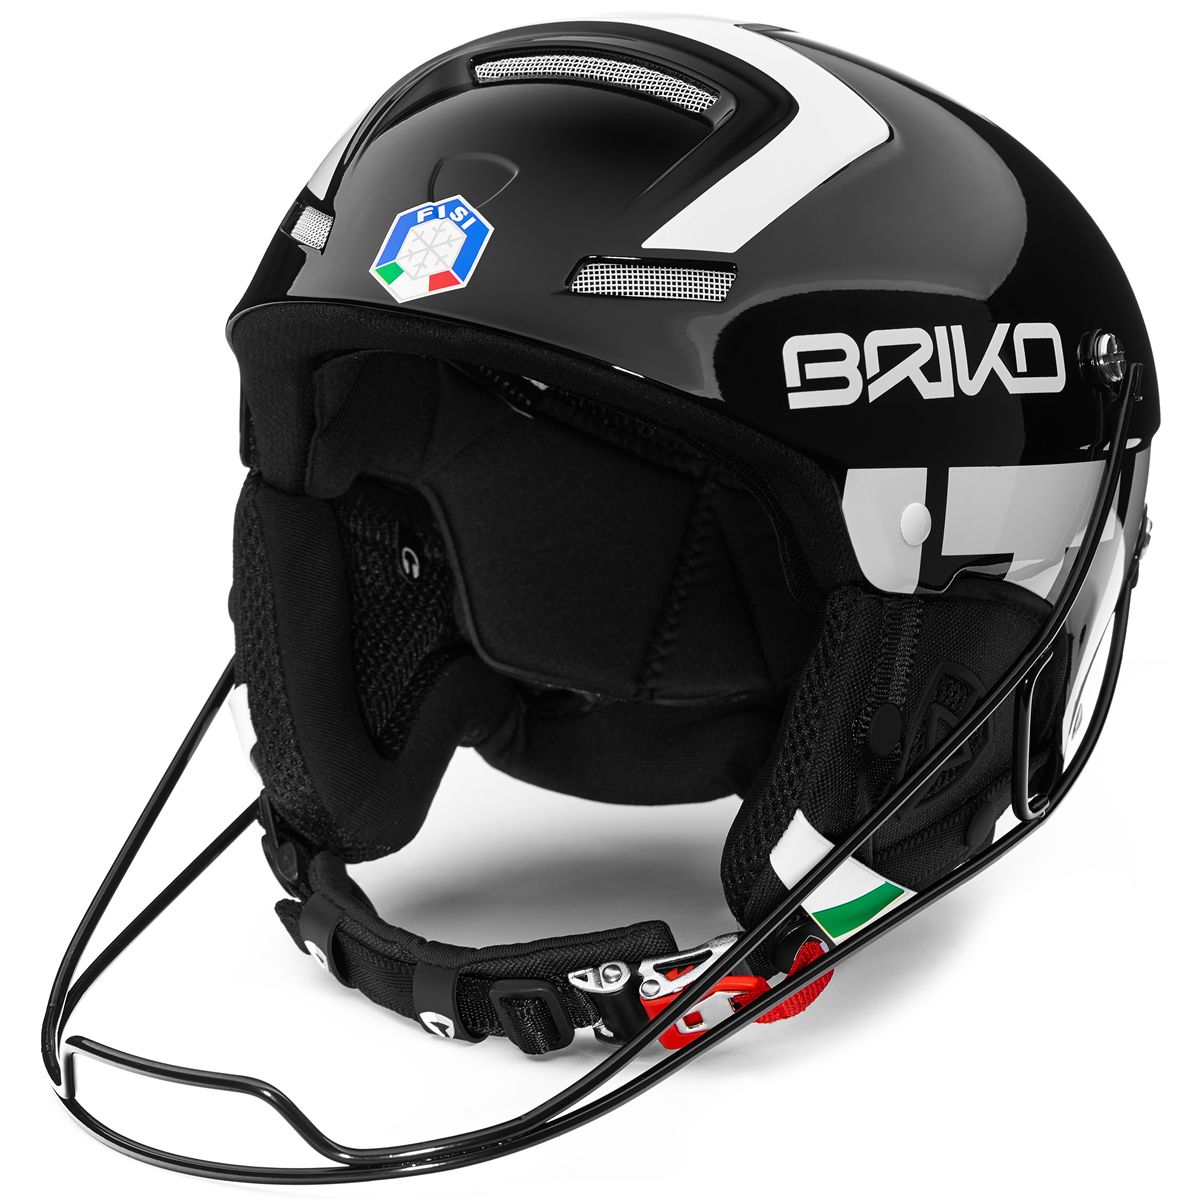 Briko HELMETS SLALOM - FISI Helmet Winter sports National Italy Man Woman